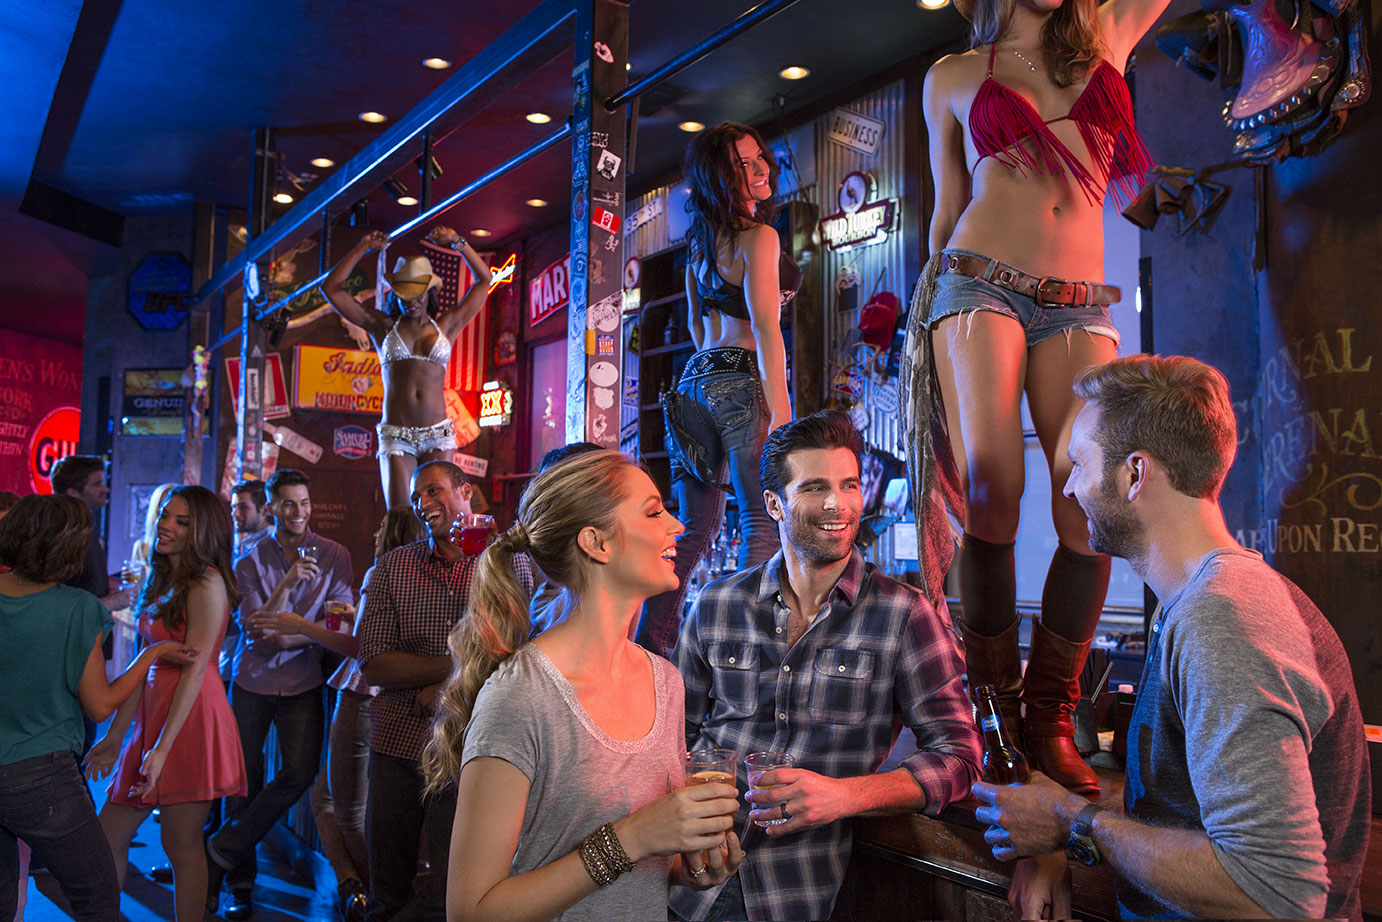 NYNew York New York Hotel Las Vegas Coyote Ugly